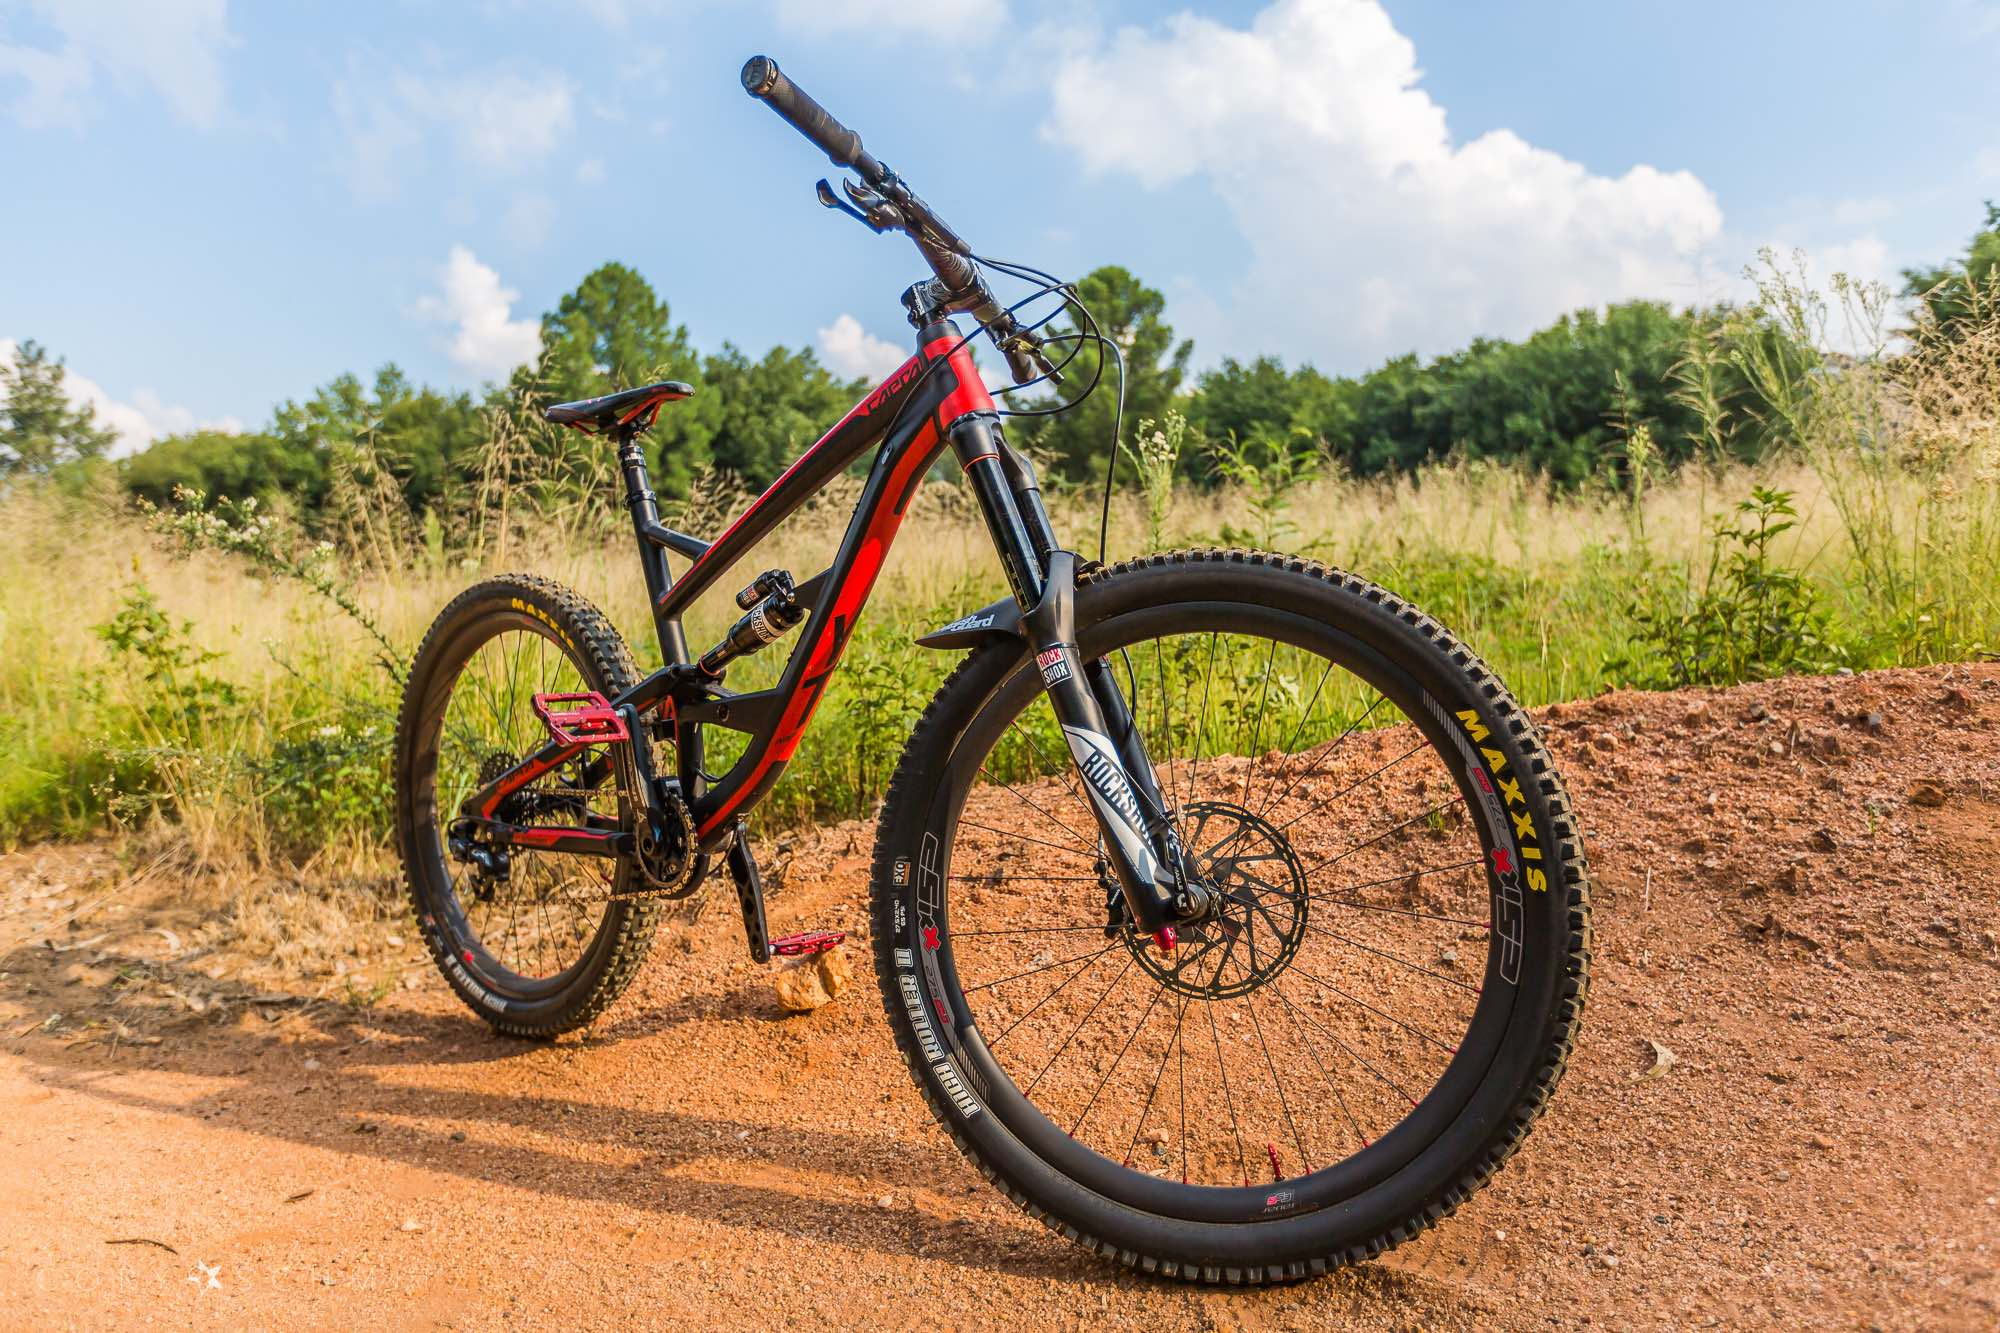 The YT Capra Enduro MTB fits with the cSixx carbon rims